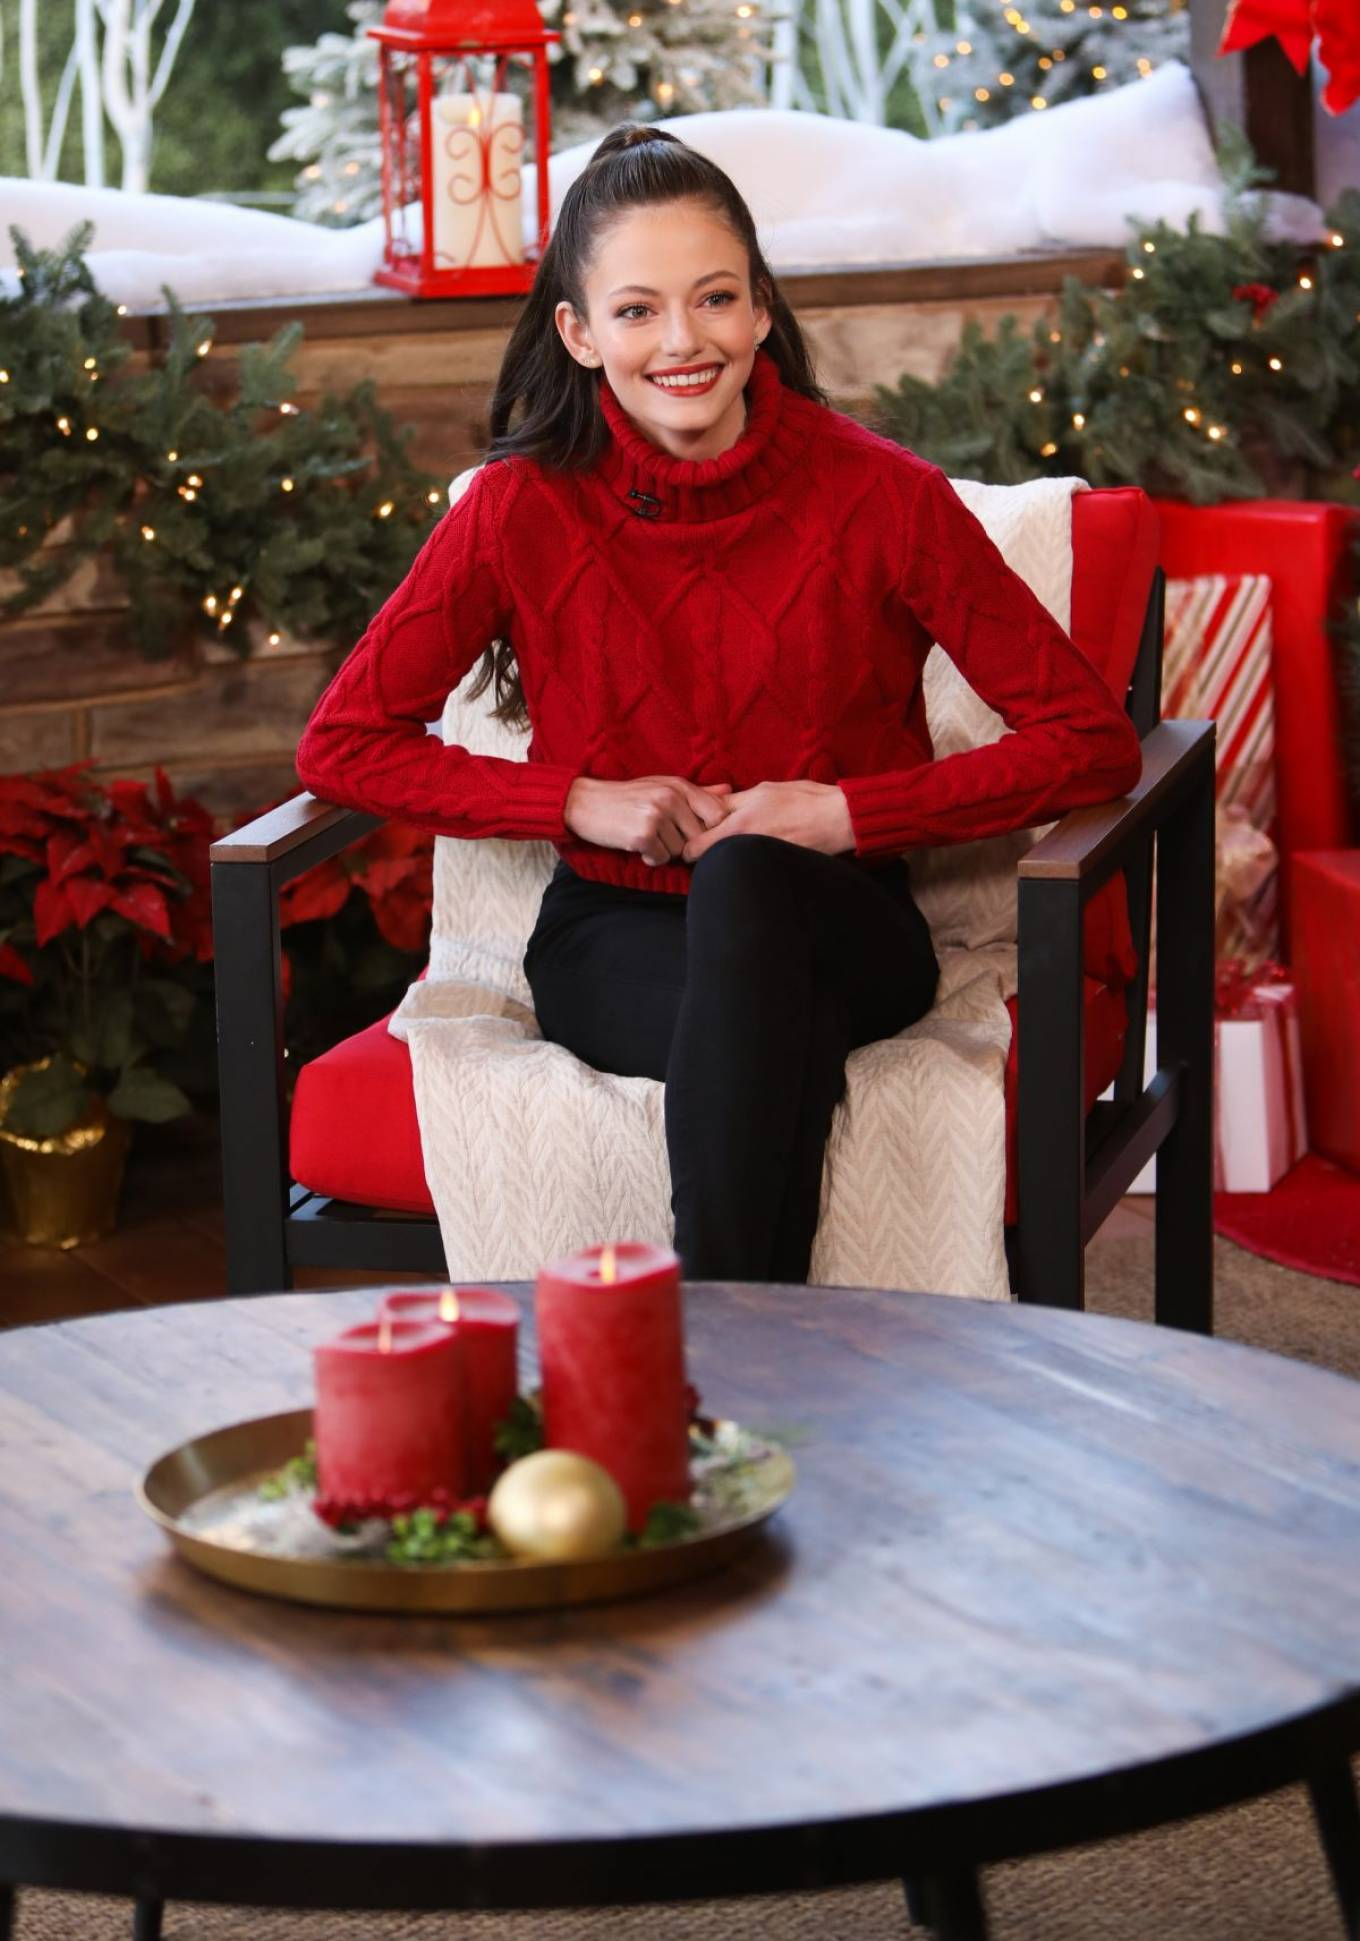 Mackenzie Foy 2020 : Mackenzie Foy – Pictured at Hallmark Channel's Home and Family -06